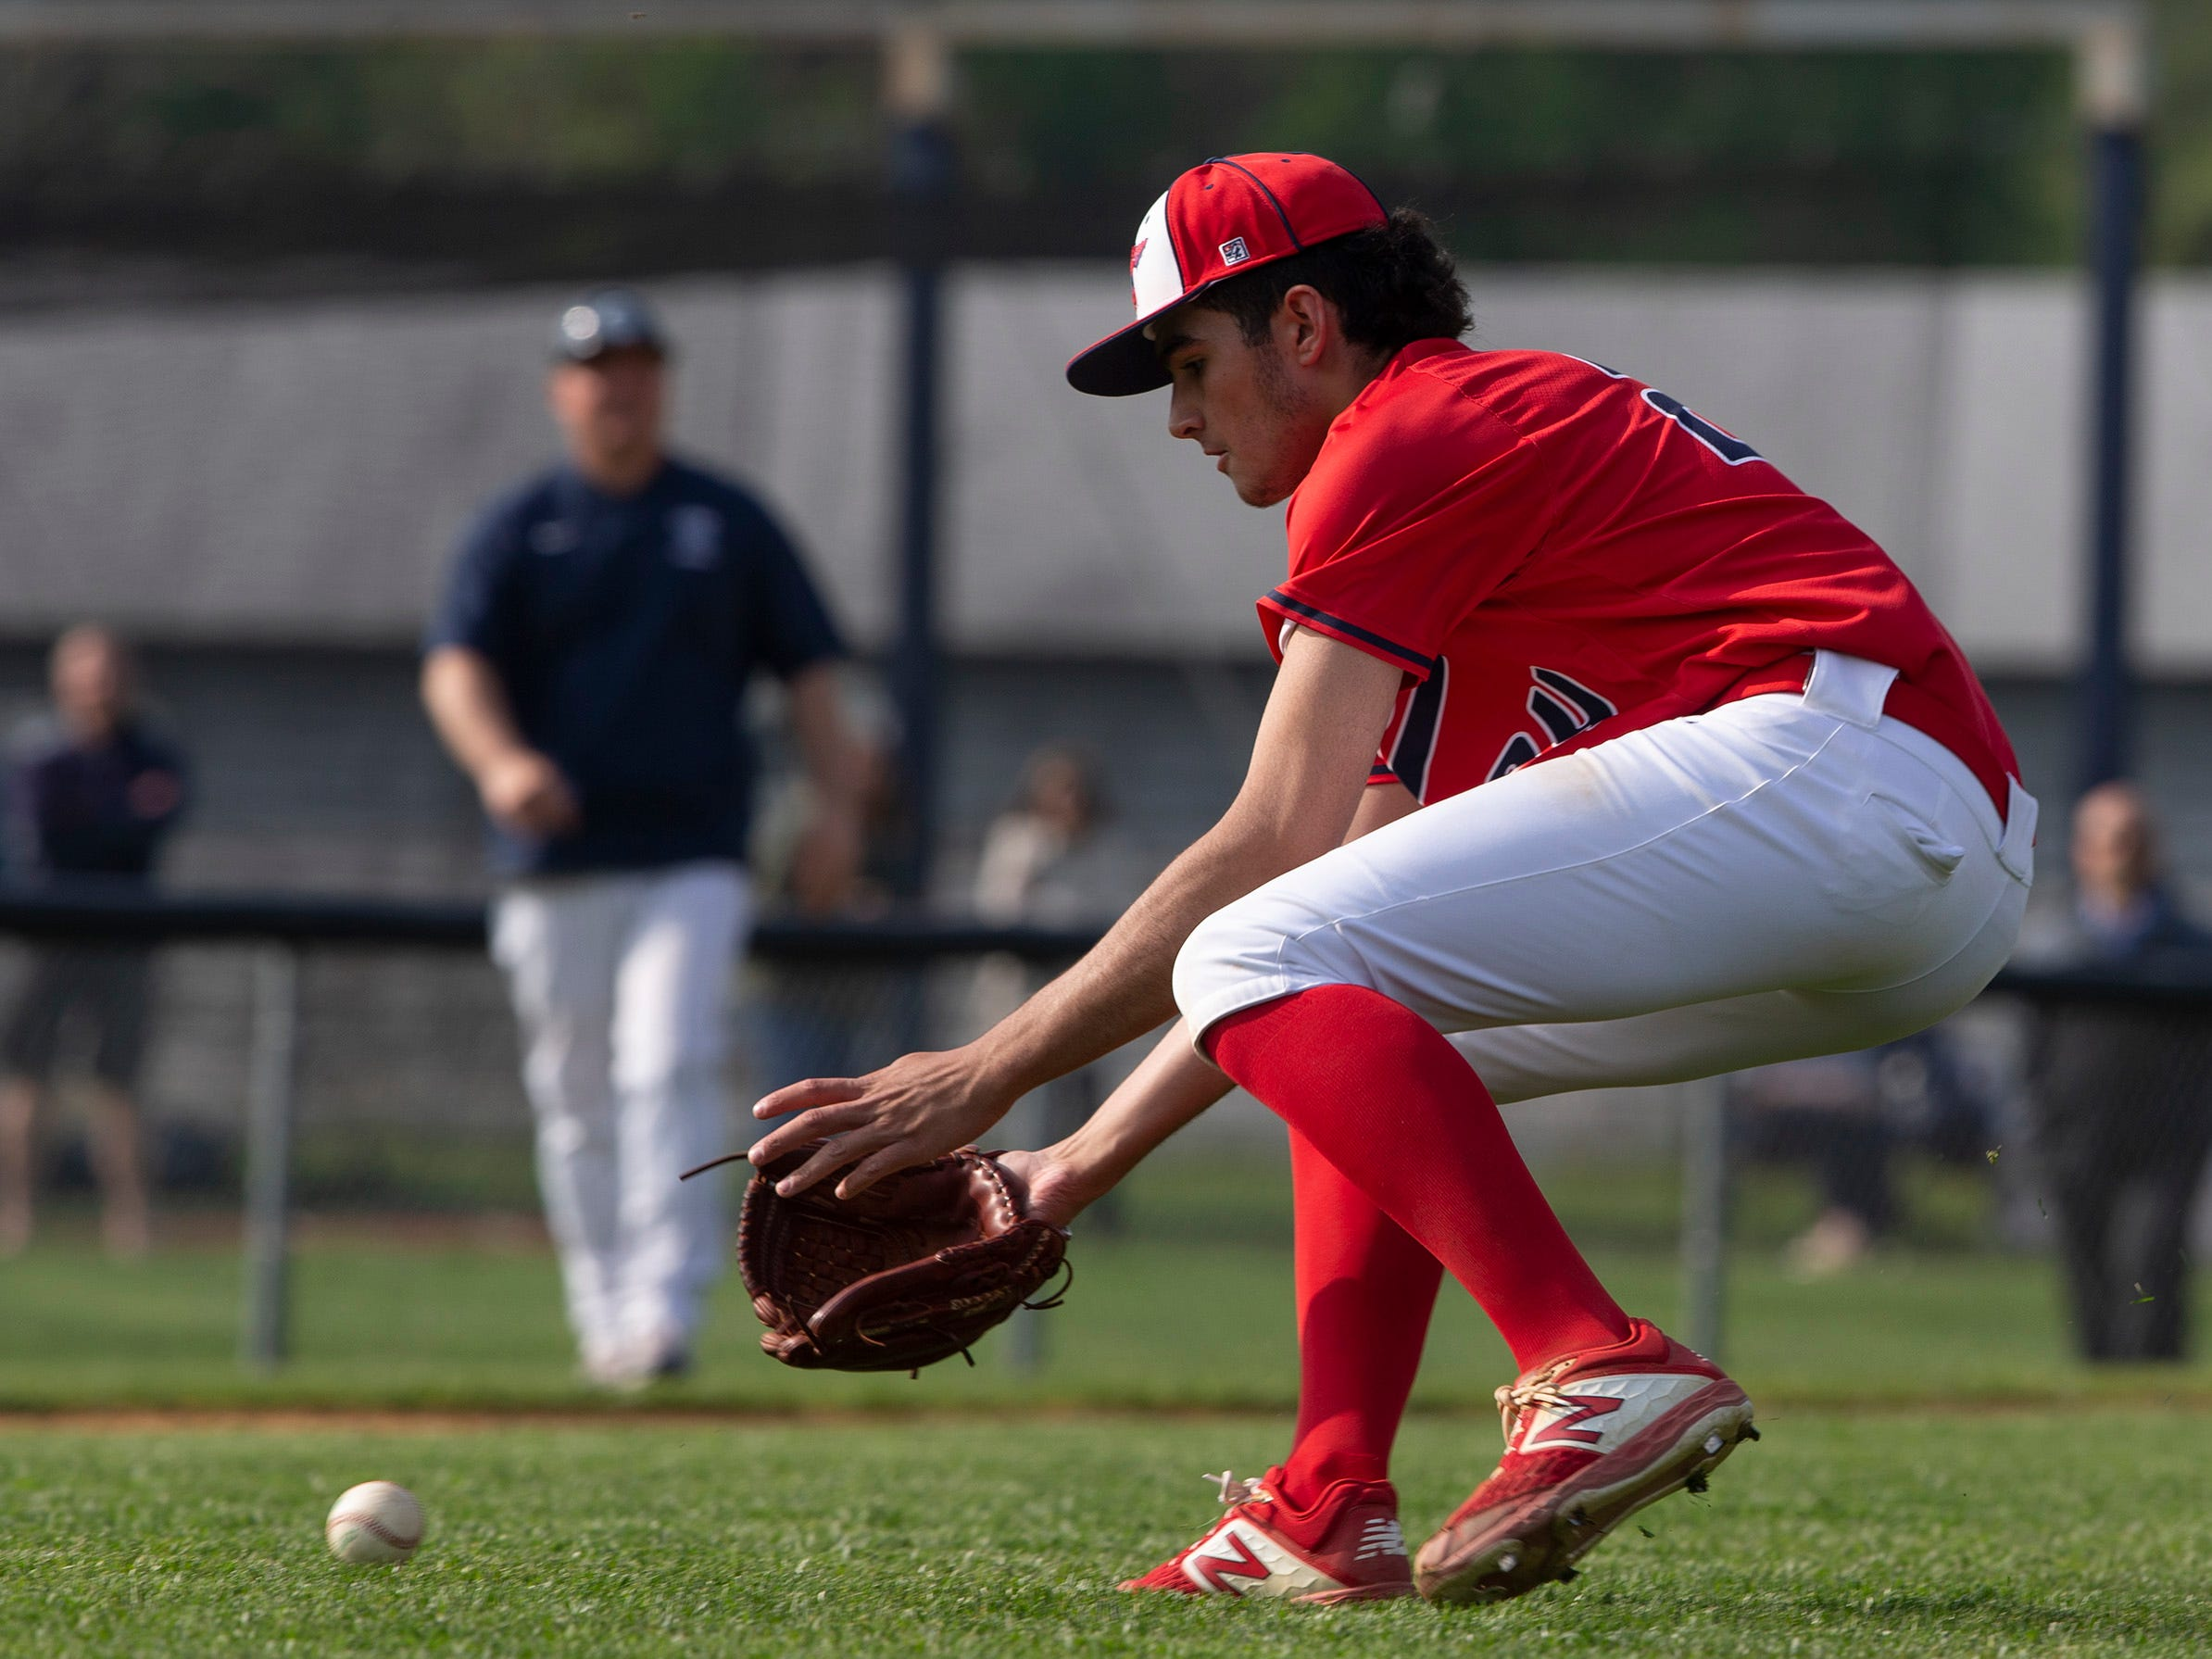 Manalapan baseball vs Christian Brothers Academy in Middletown NJ. On May 2, 2019.